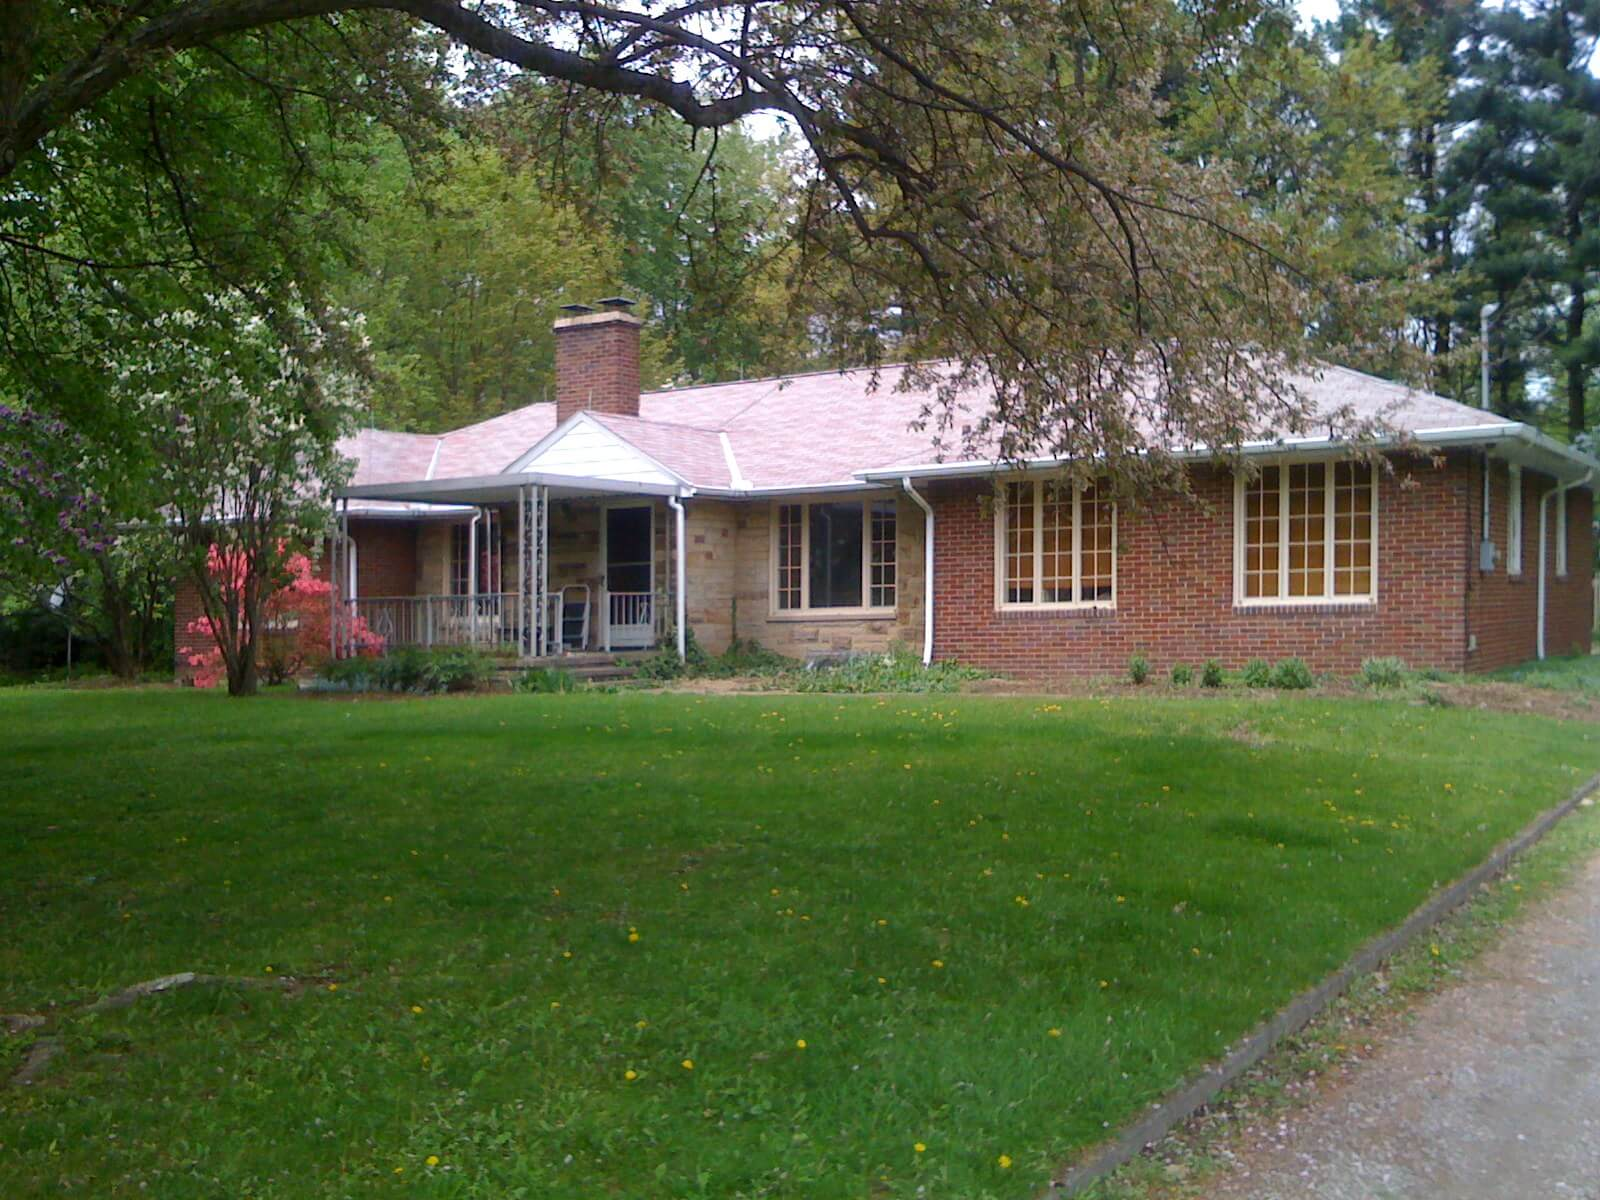 Let 39 s help catherine retro renovate her 1948 ohio ranch for Ranch home builders ohio